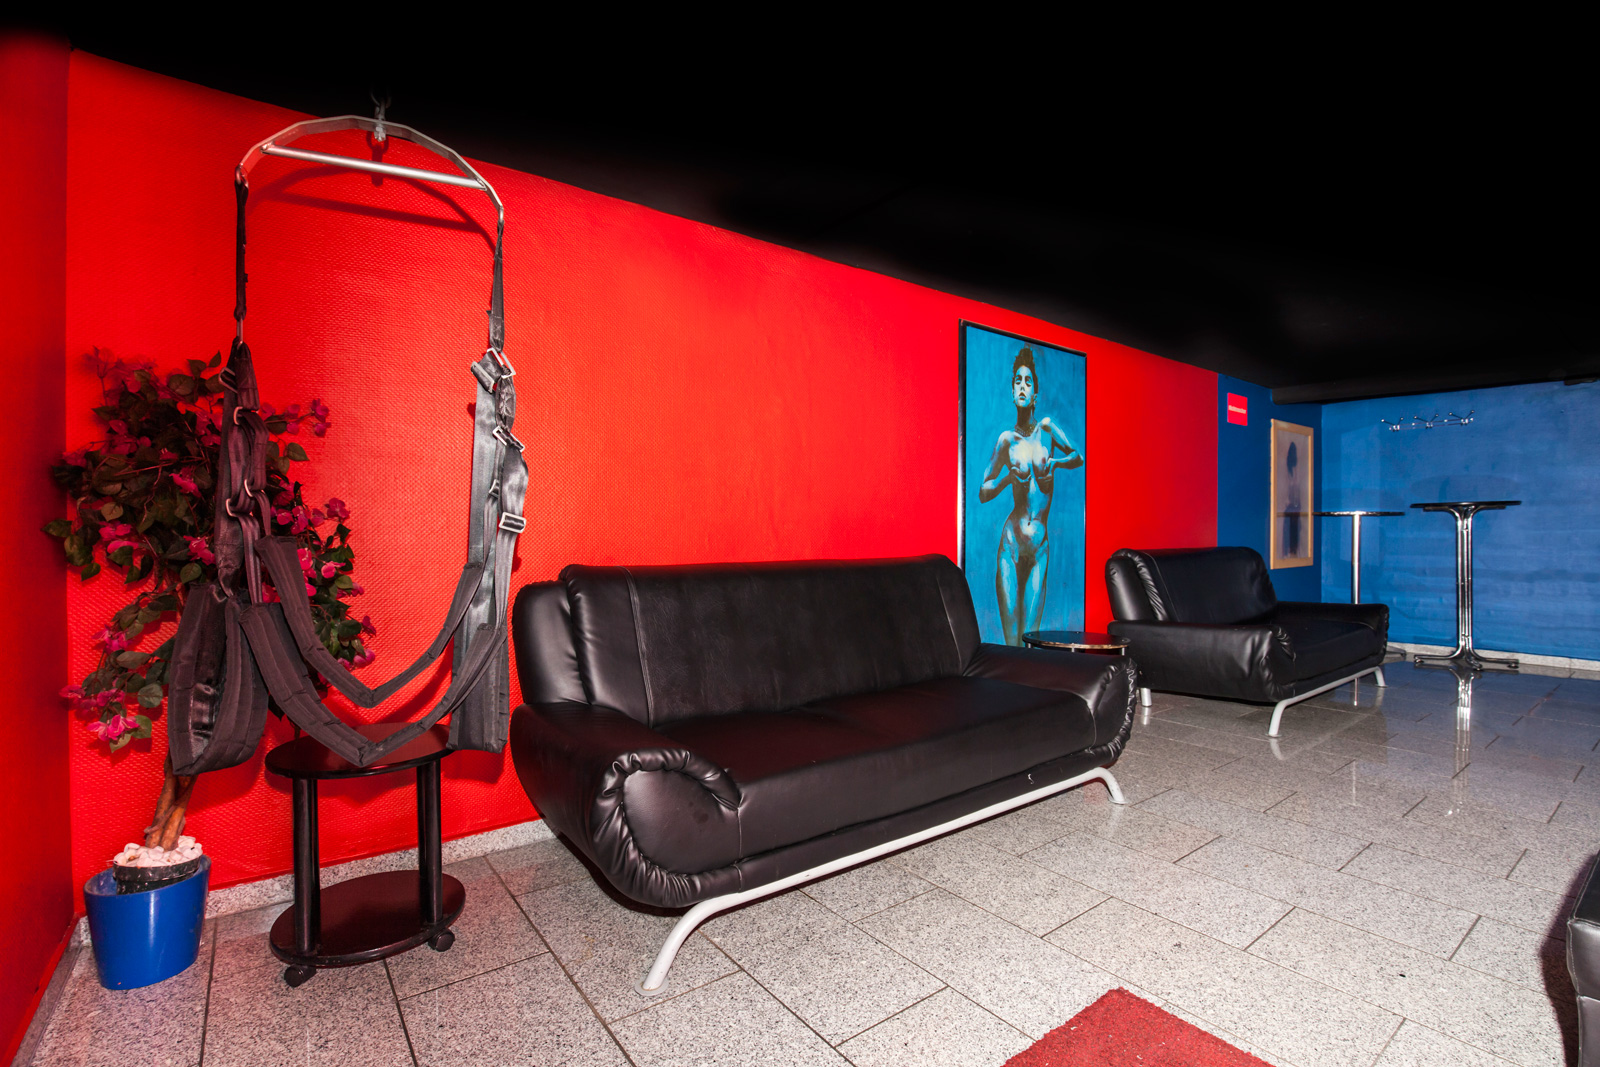 sexkino in wuppertal bdsm apartment